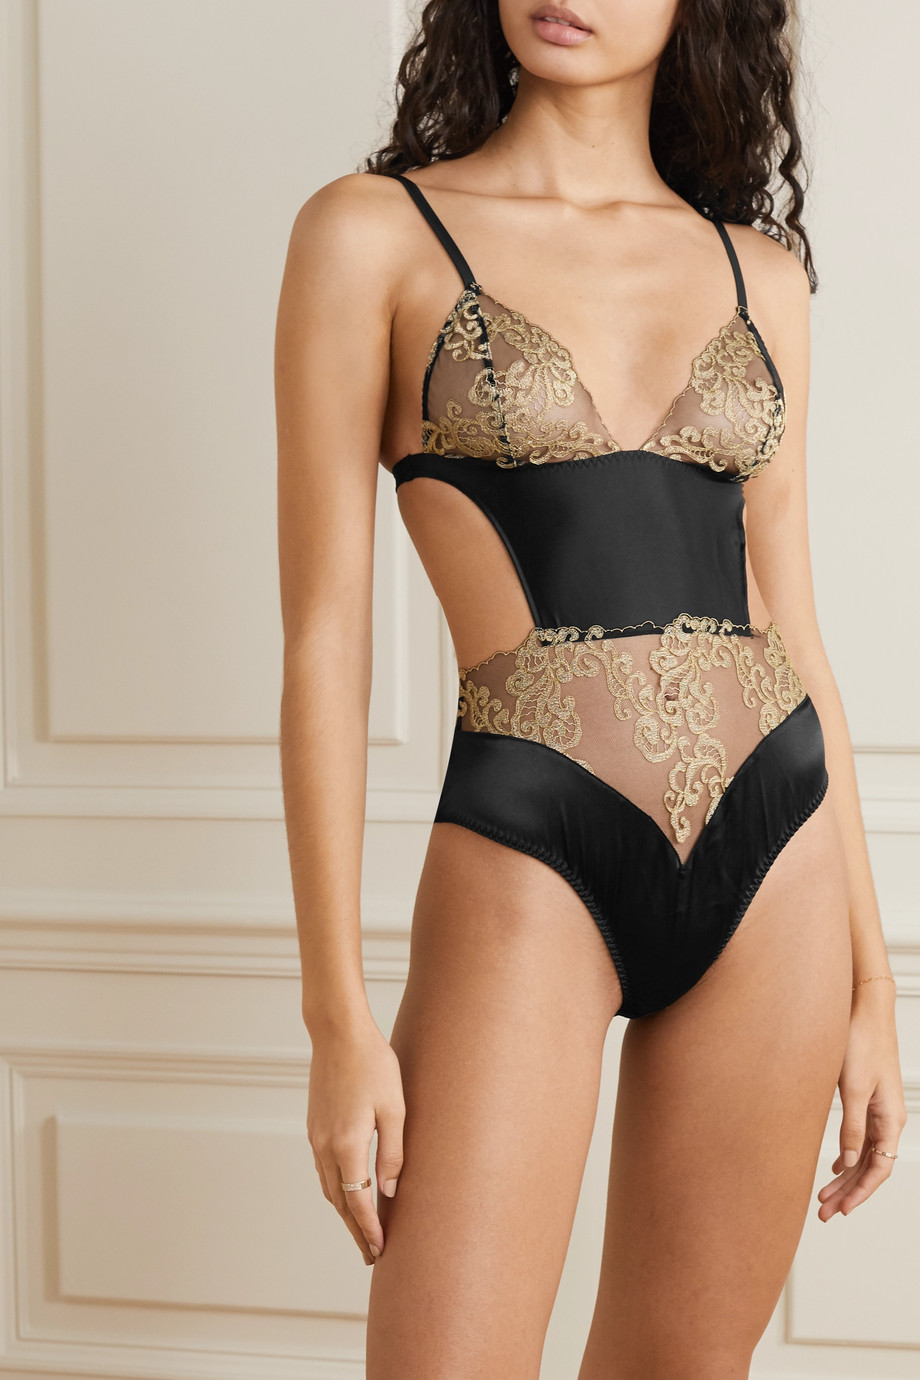 Coco de Mer Hikaru cutout metallic lace and satin bodysuit